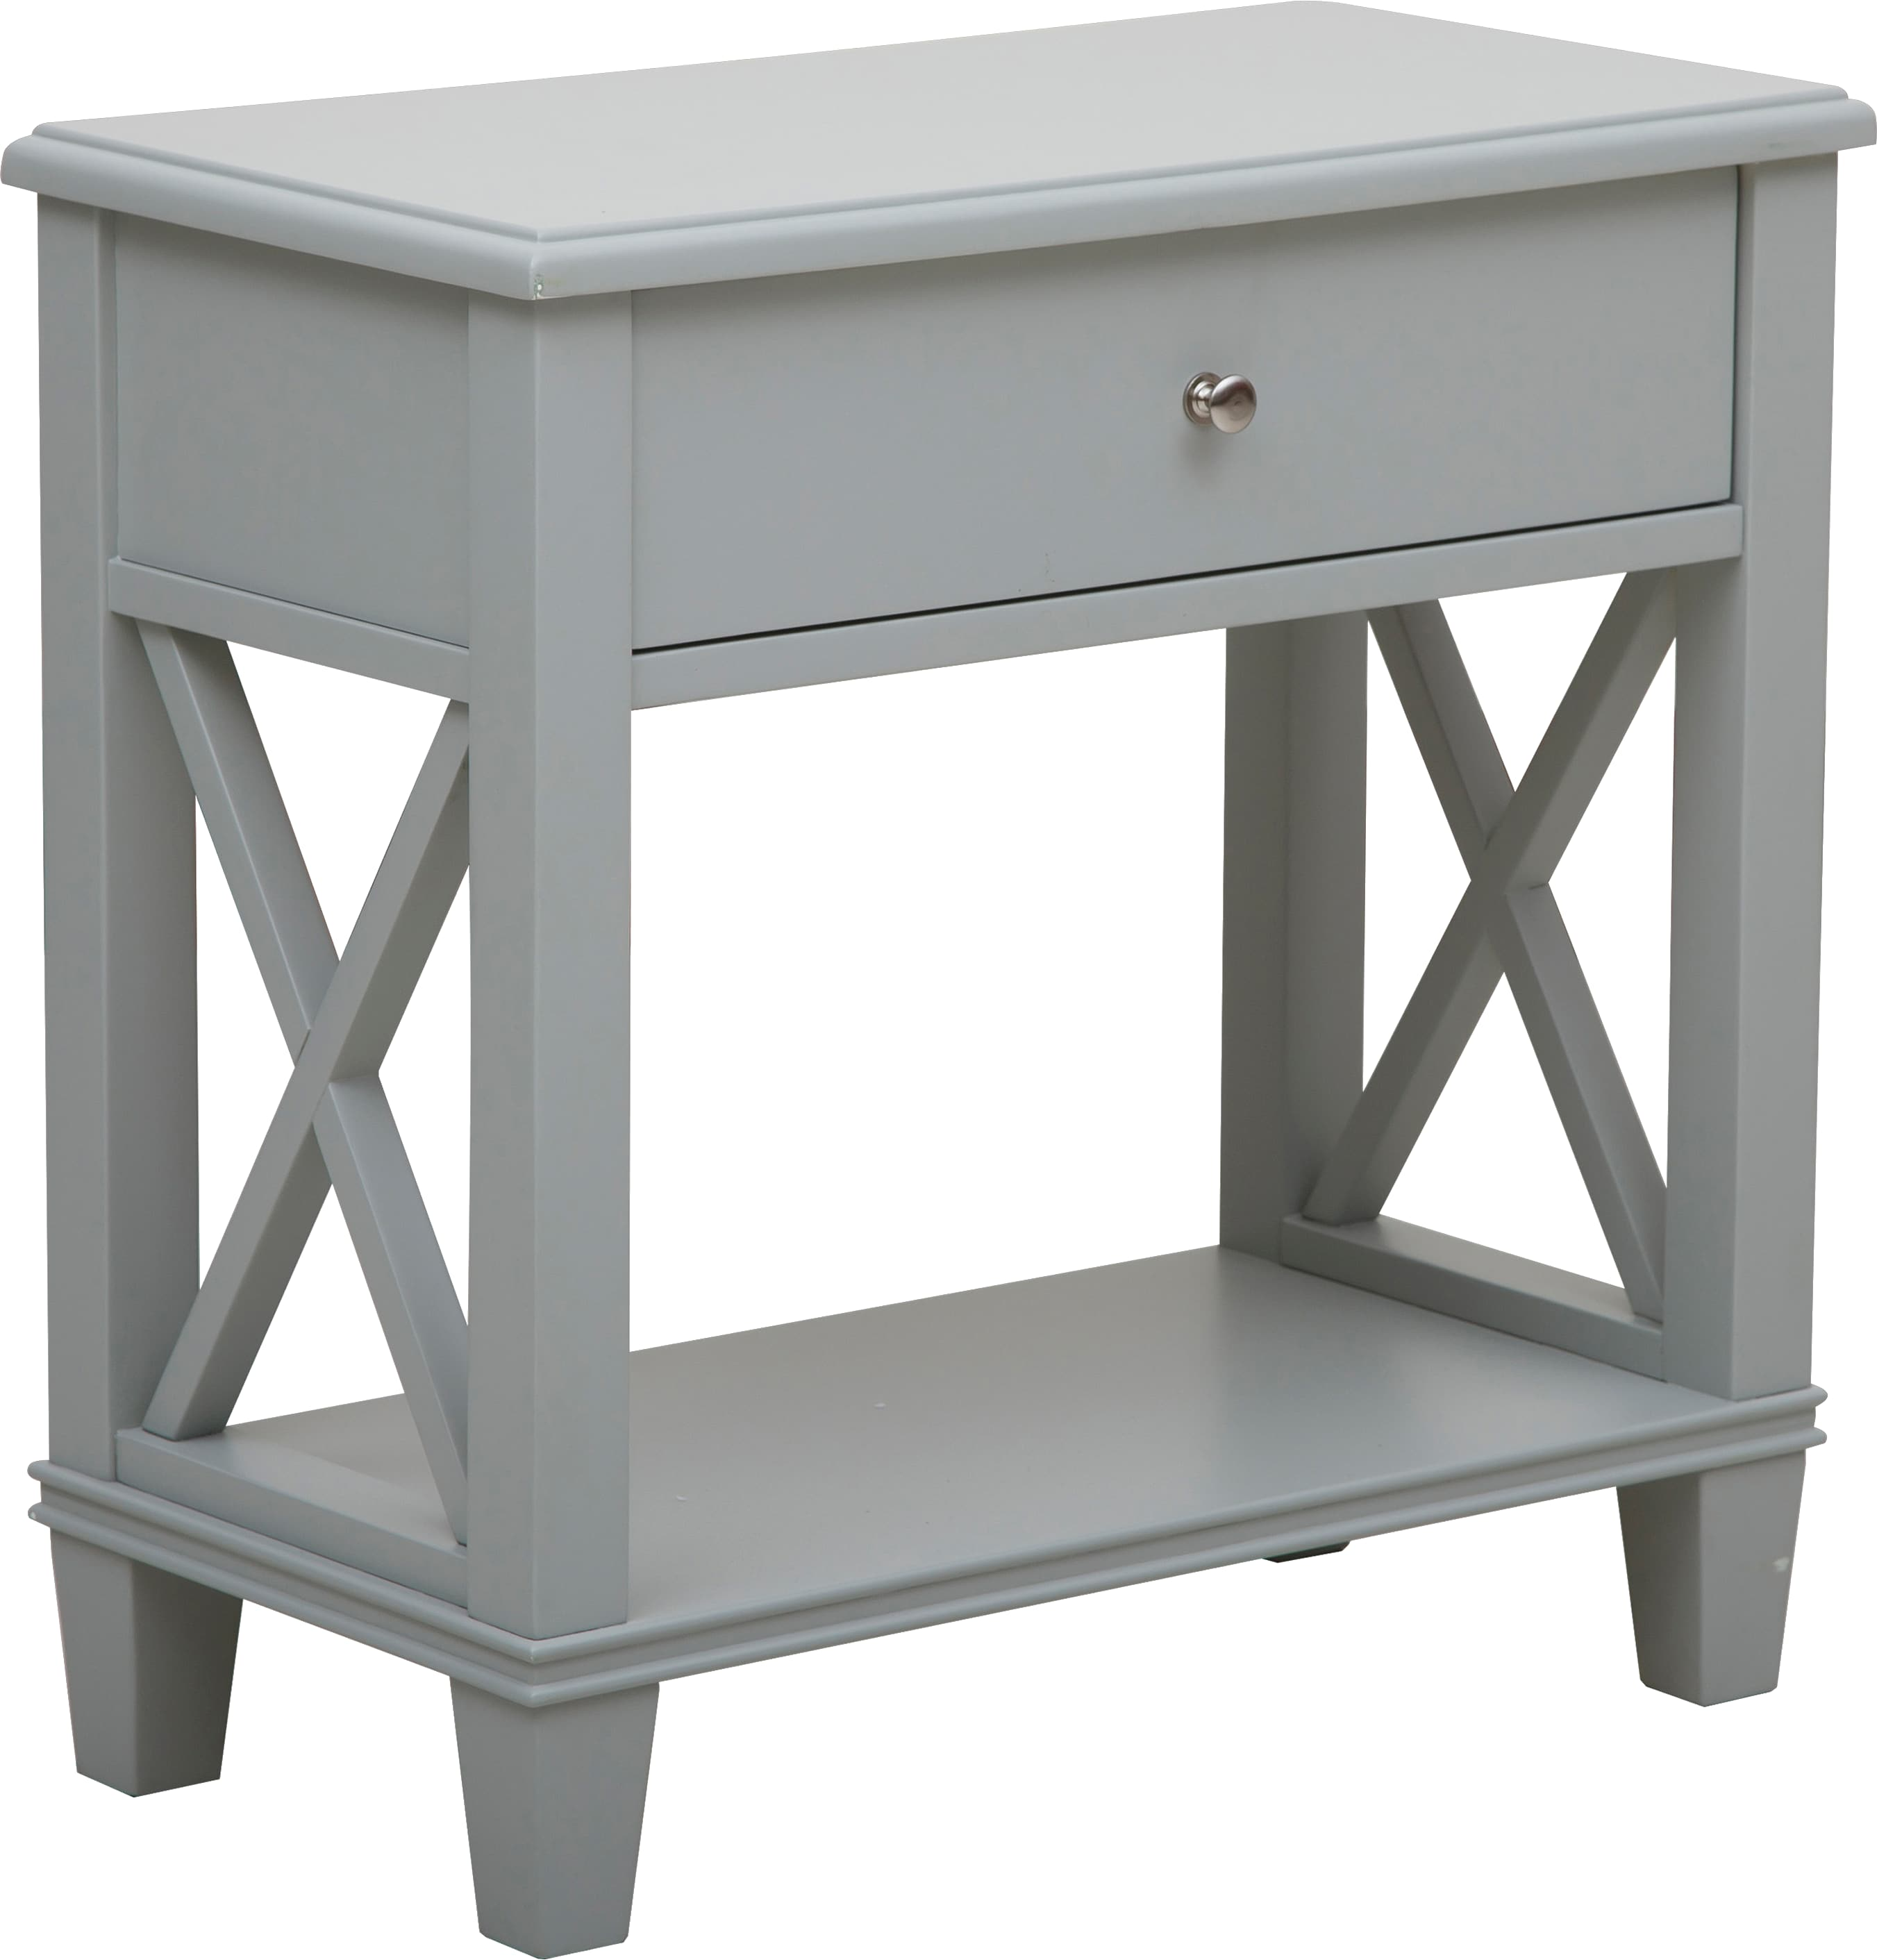 nell gray accent table tables colors tbl grey front door threshold plate diy small piece cocktail sets ashley furniture loveseat medium oak end linens room essentials patio chairs